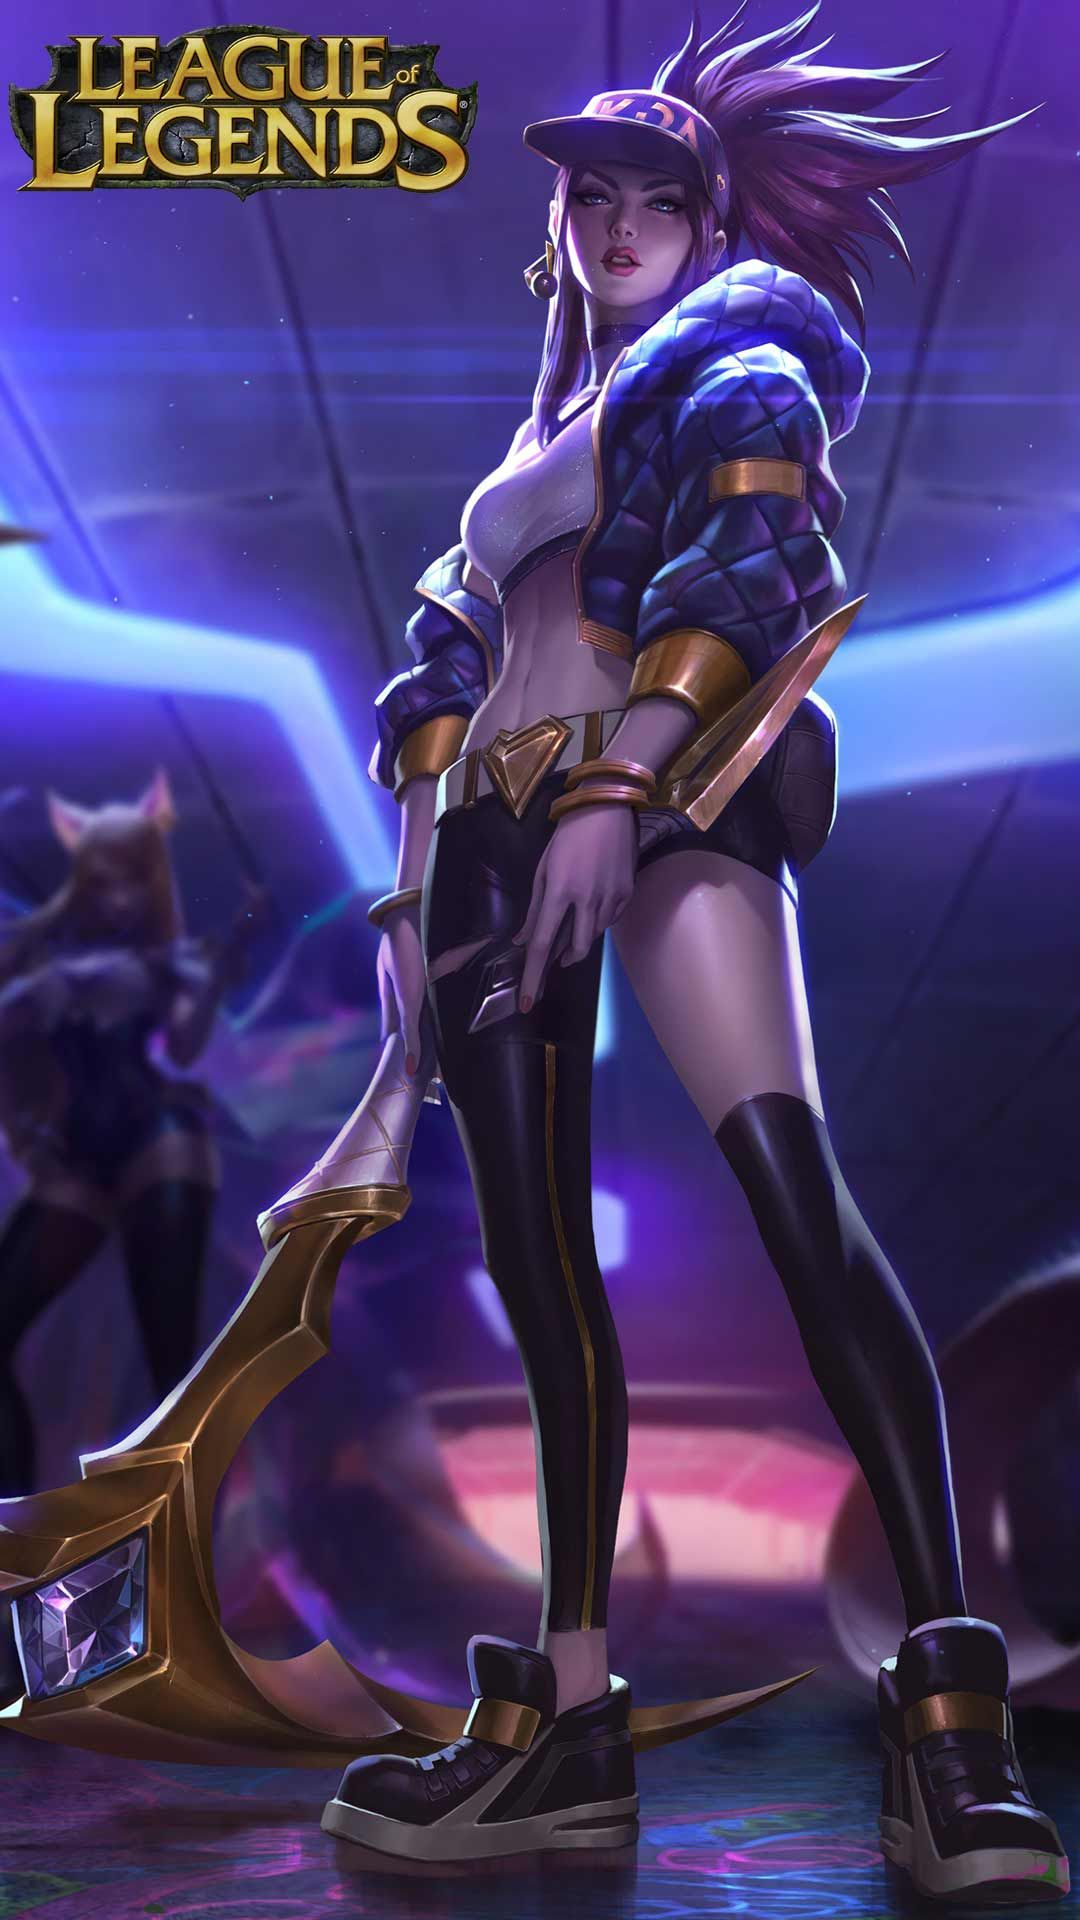 League Of Legends Wallpapers Hd Phone Backgrounds Lol Characters Female Art Poster Iphone In 2020 League Of Legends Characters League Of Legends Lol League Of Legends